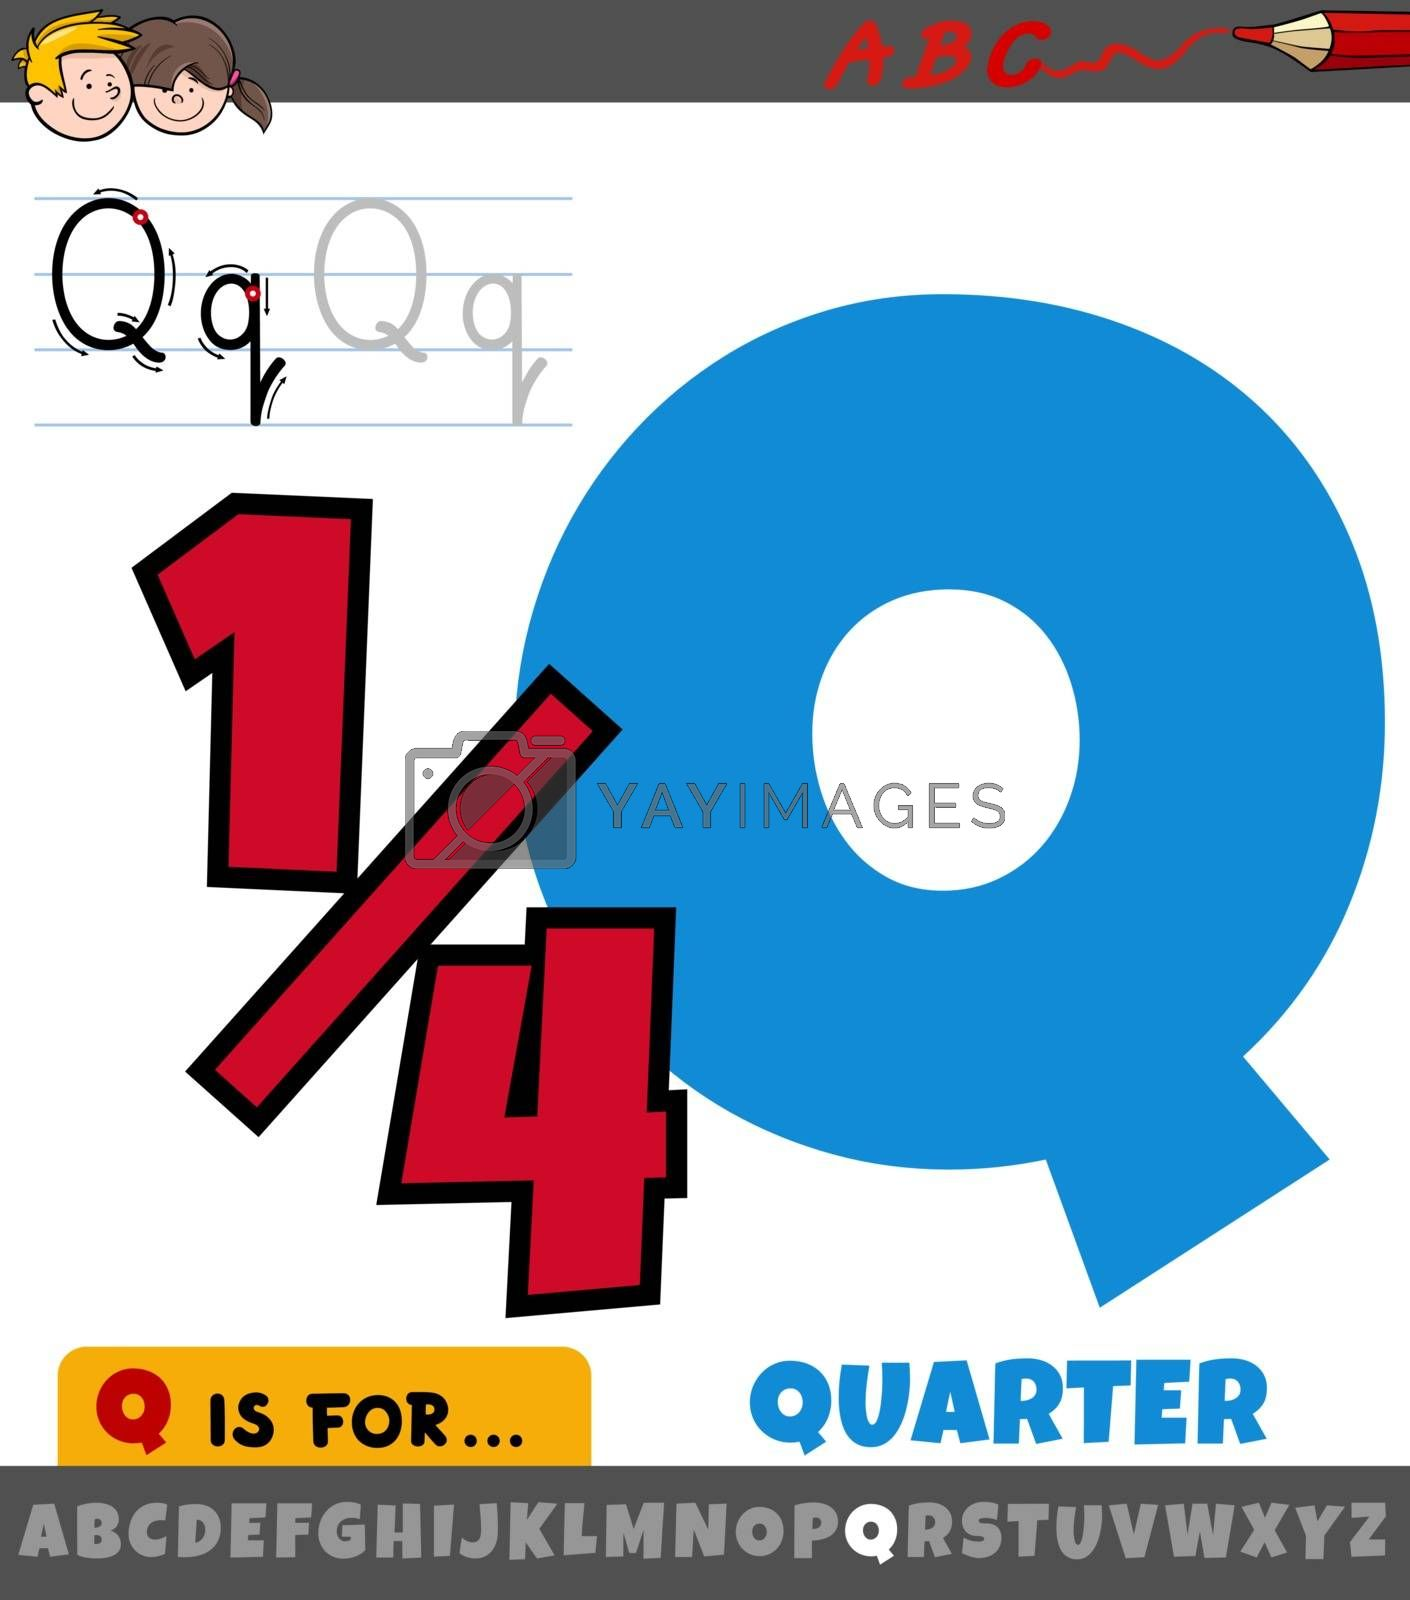 Educational cartoon illustration of letter Q from alphabet with quarter symbol for children